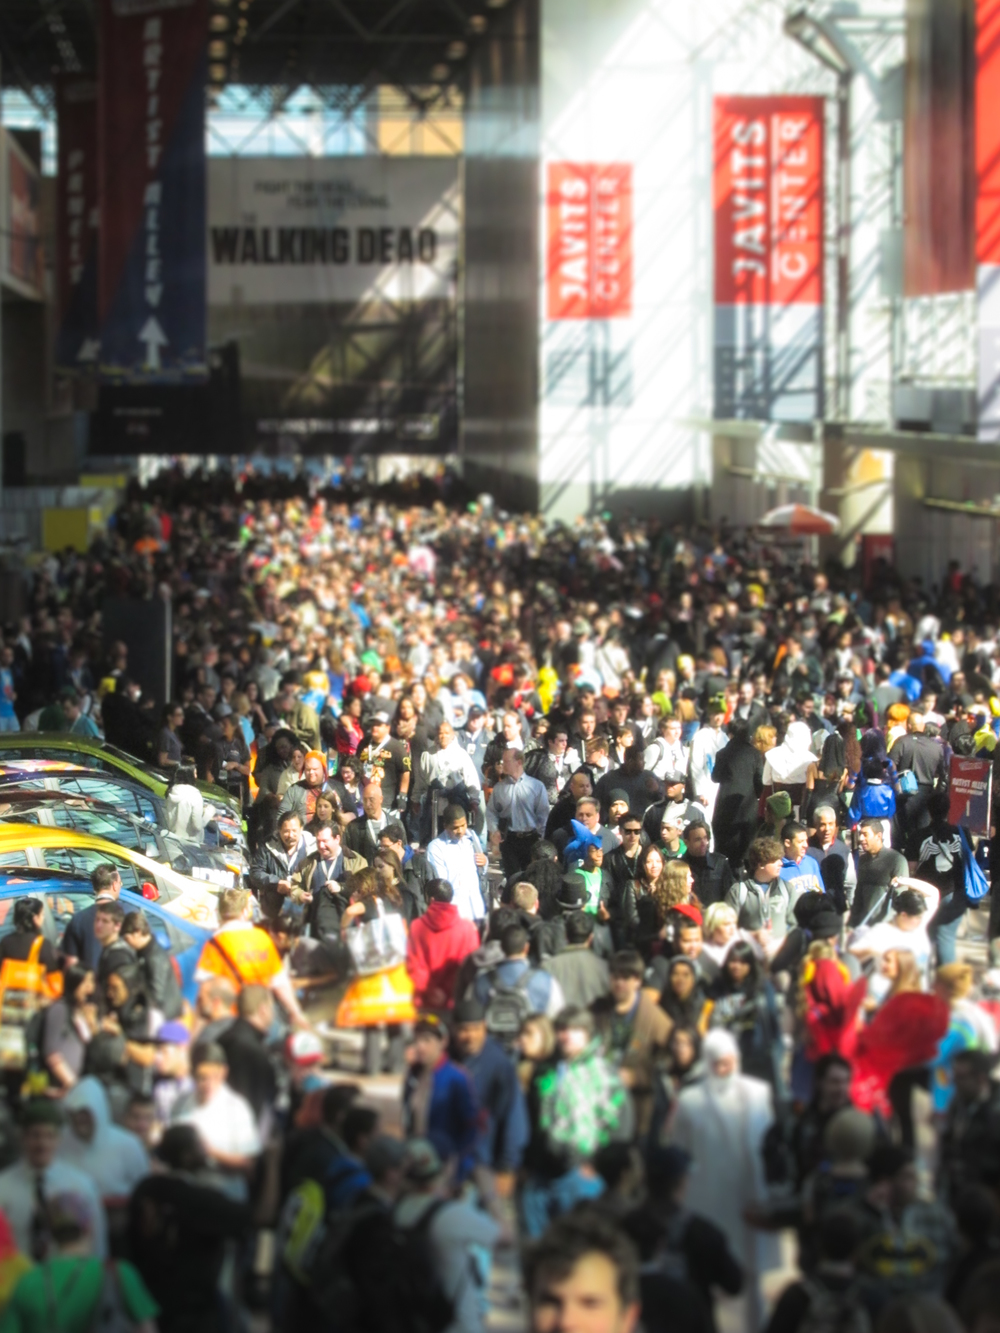 It's easy to feel lost in a crowd at comic-cons. New York Comic Con 2012.